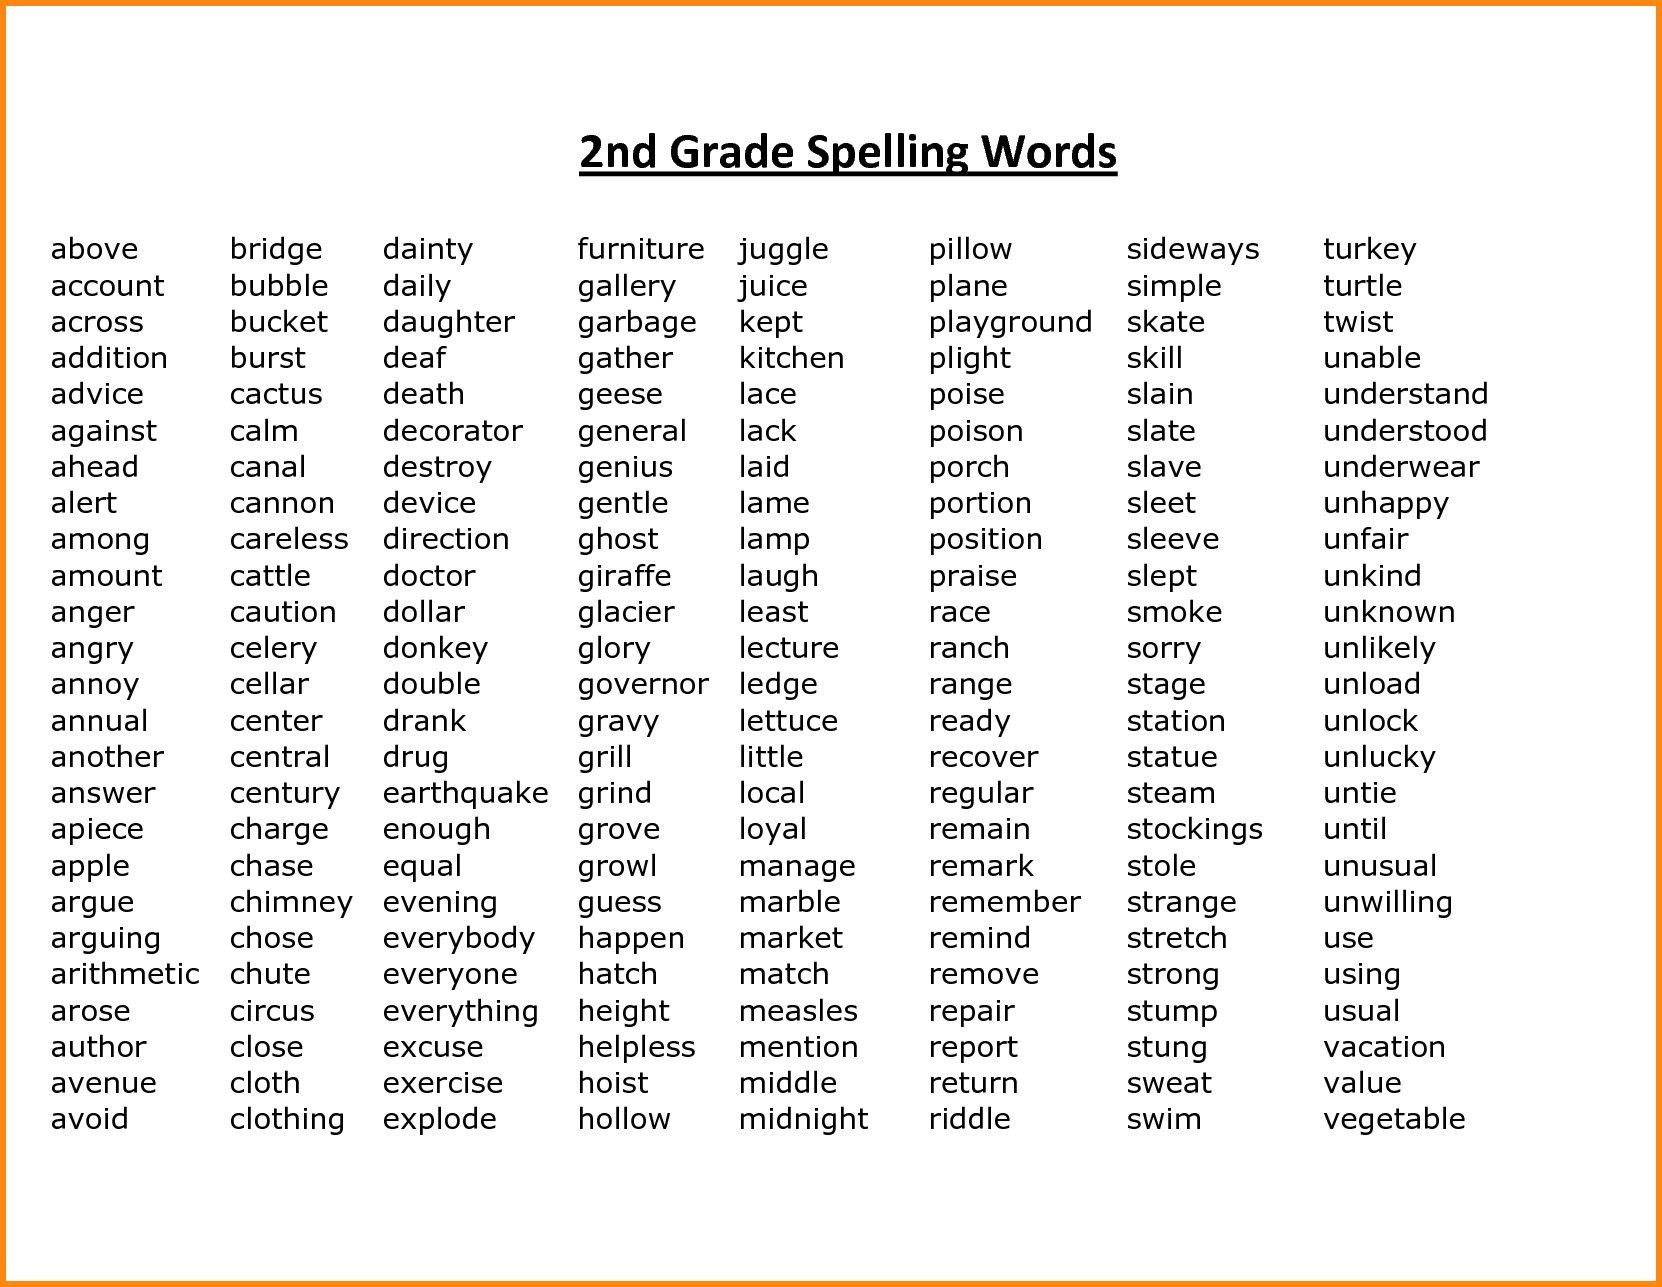 2nd Grade Spelling Worksheet 2nd Grade Spelling Words Best Coloring Pages for Kids In